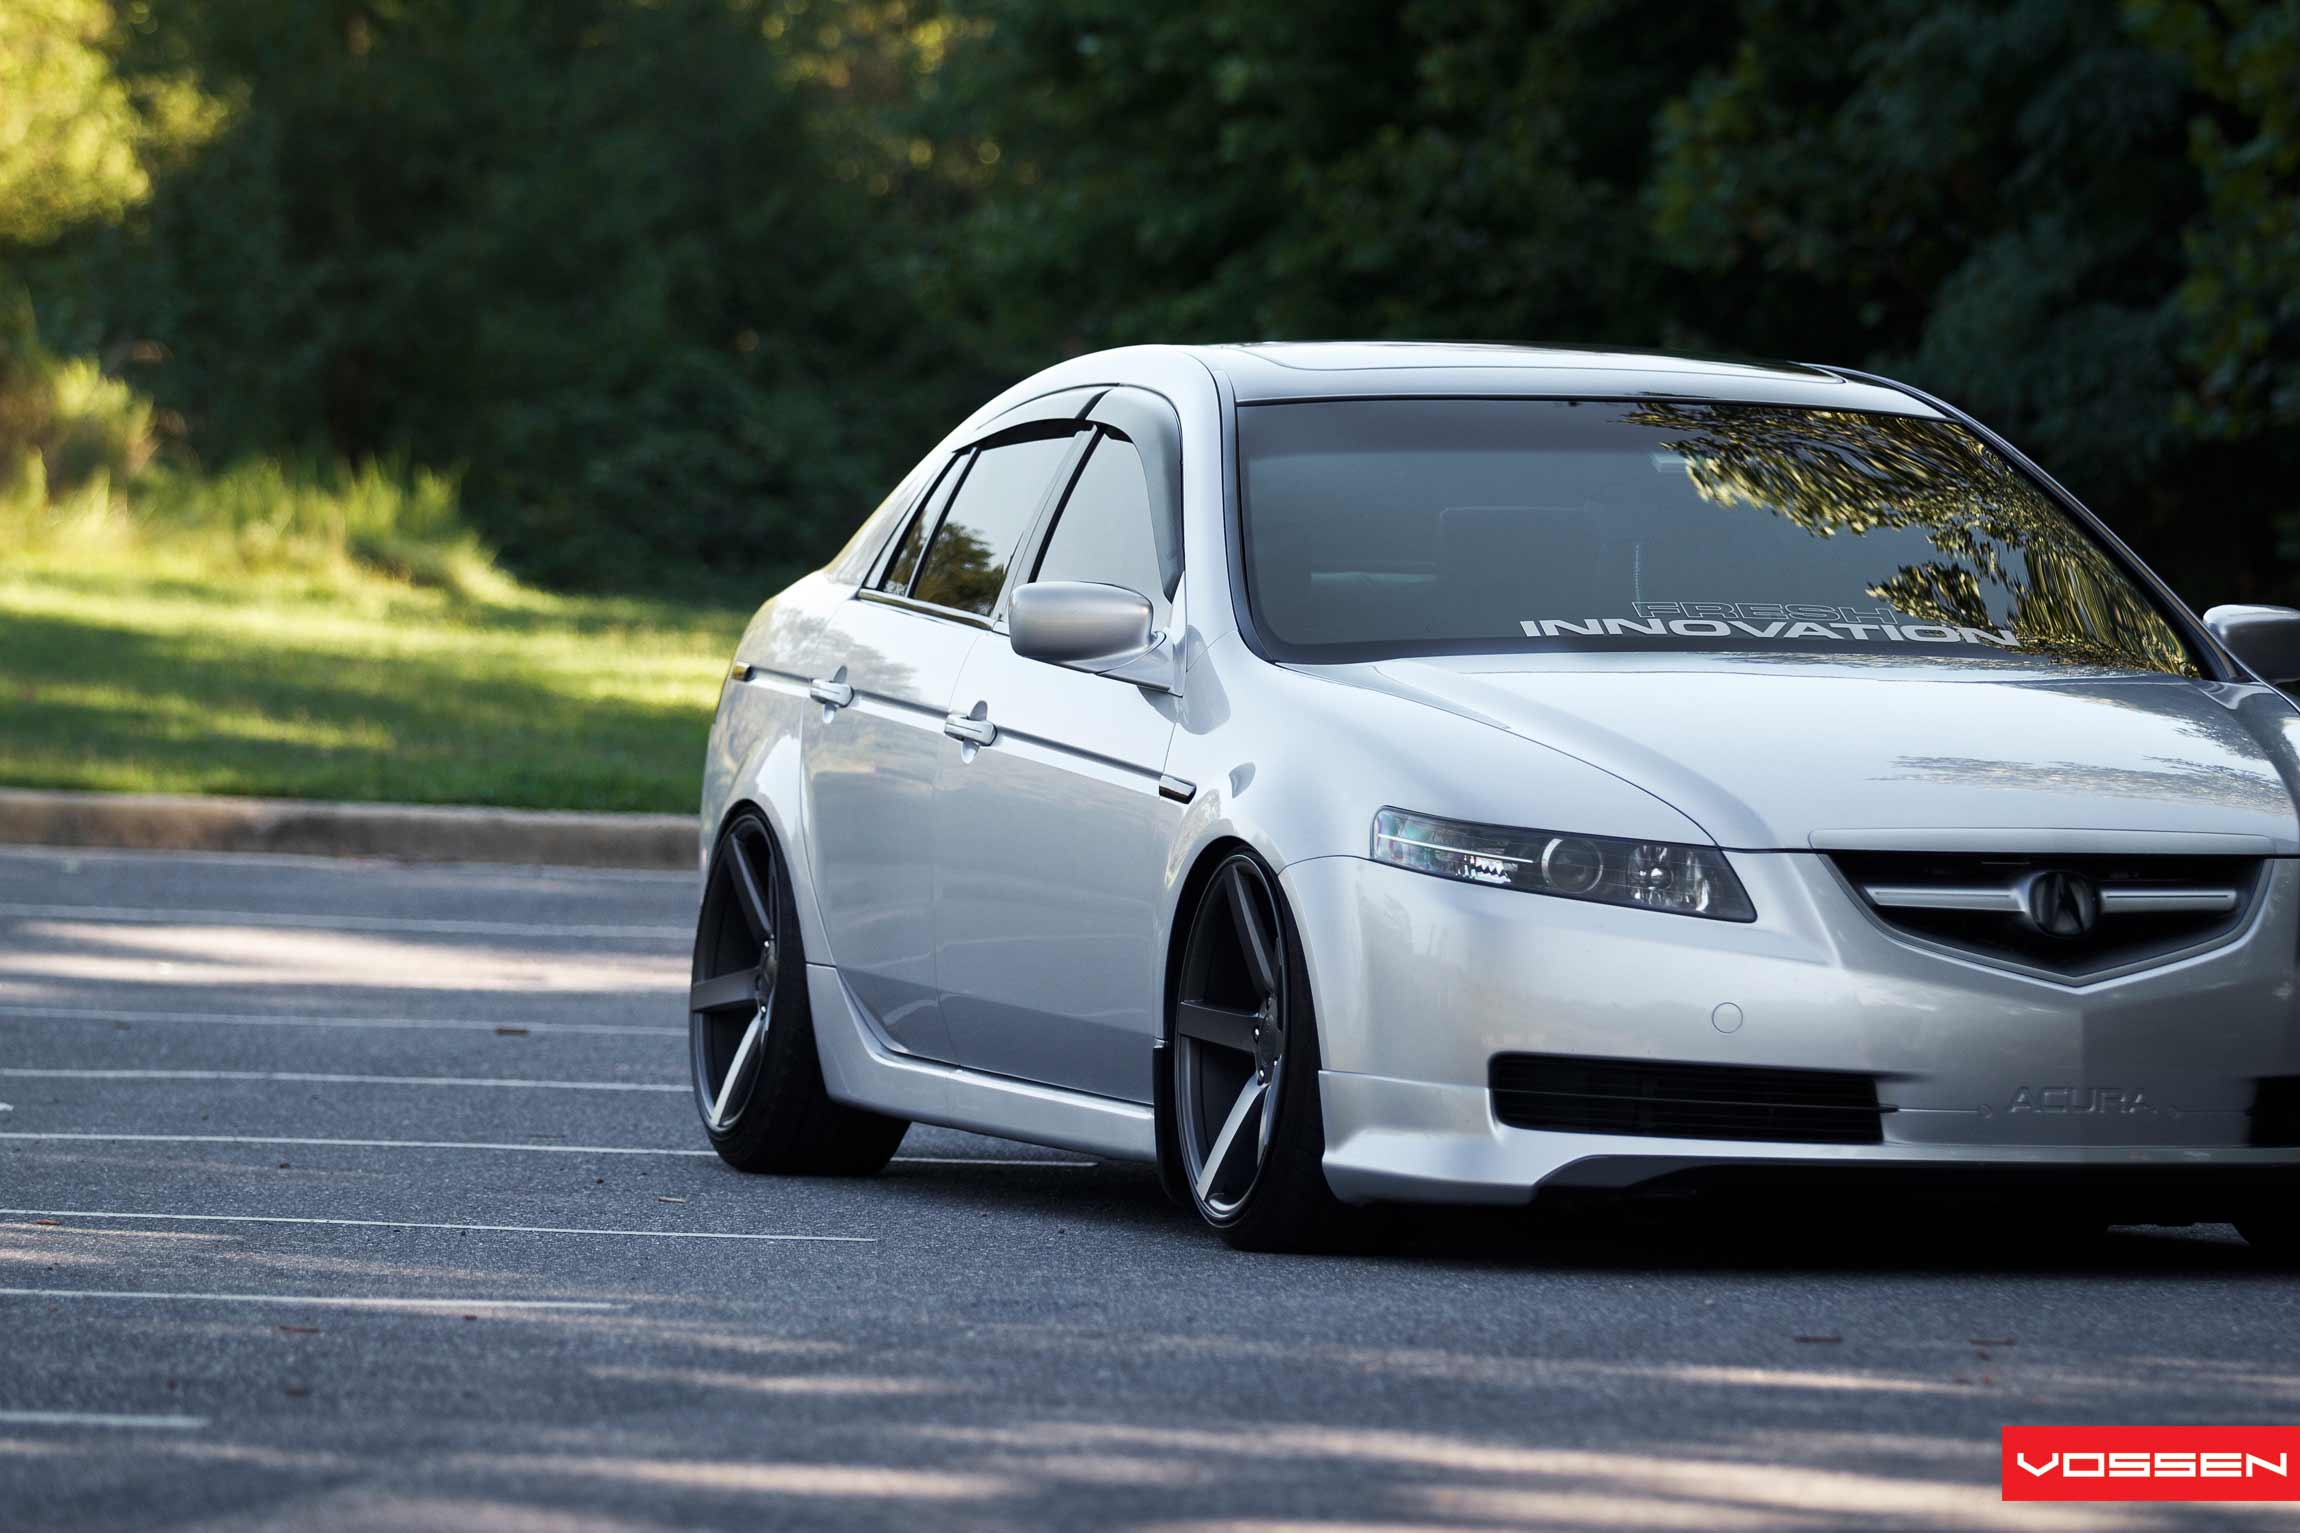 acura tl pictures #4